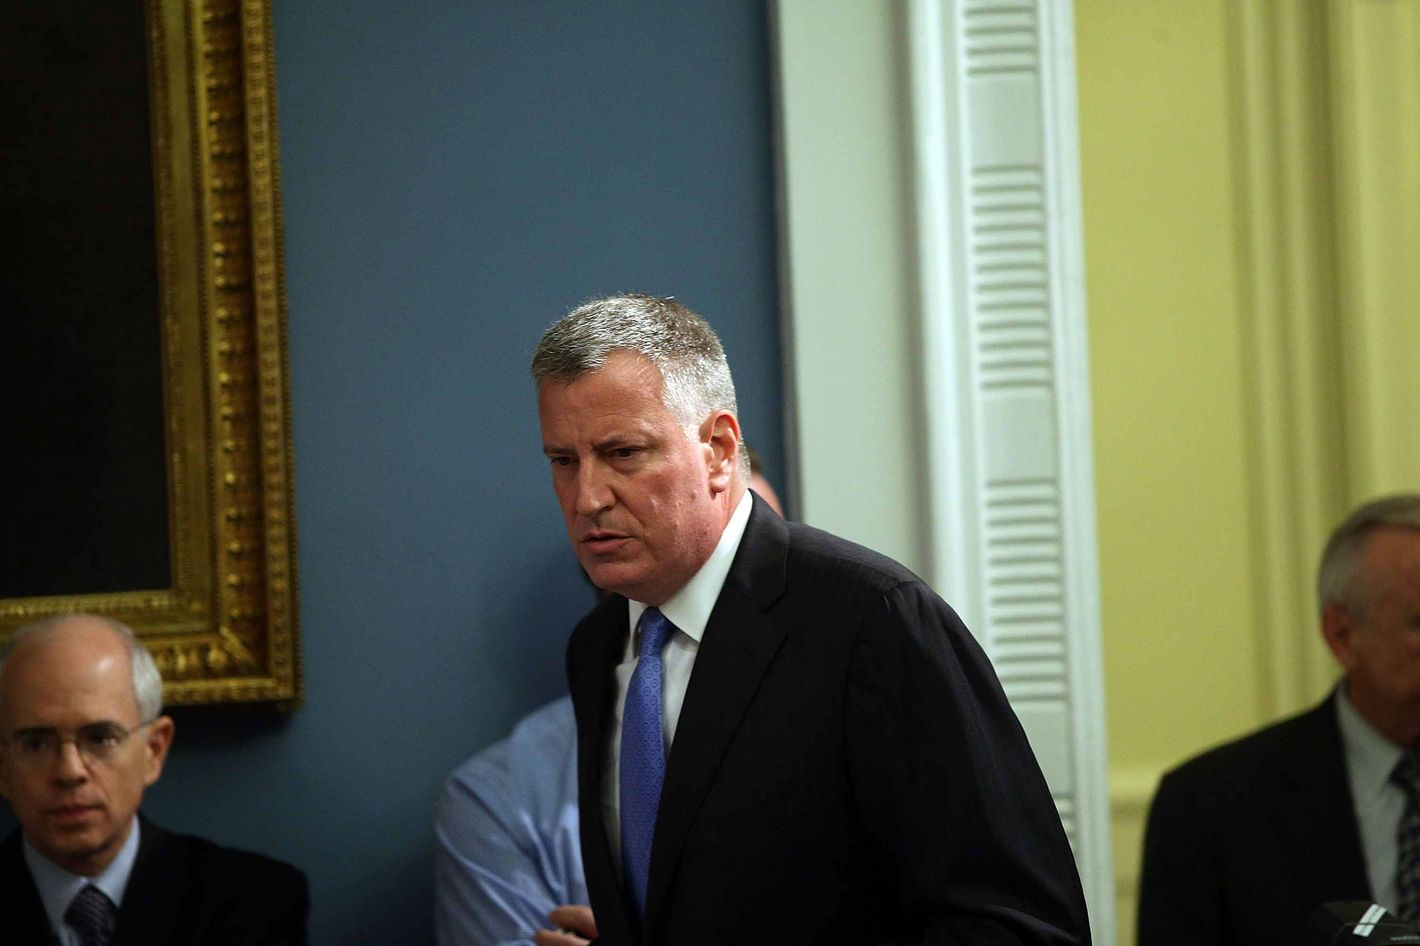 NEW YORK, NY - JULY 18:  New York Mayor Bill de Blasio enters a news conference to address the recent death of a man in police custody on July 18, 2014 in New York City. The mayor has promised a full investigation into the circumstances surrounding the death of Eric Garner after he was taken into police custody in Staten Island yesterday. A 400-pound, 6-foot-4 asthmatic, Garner (43) died after police put him in a chokehold outside of a conveinence store for illegally selling cigarettes.  (Photo by Spencer Platt/Getty Images)